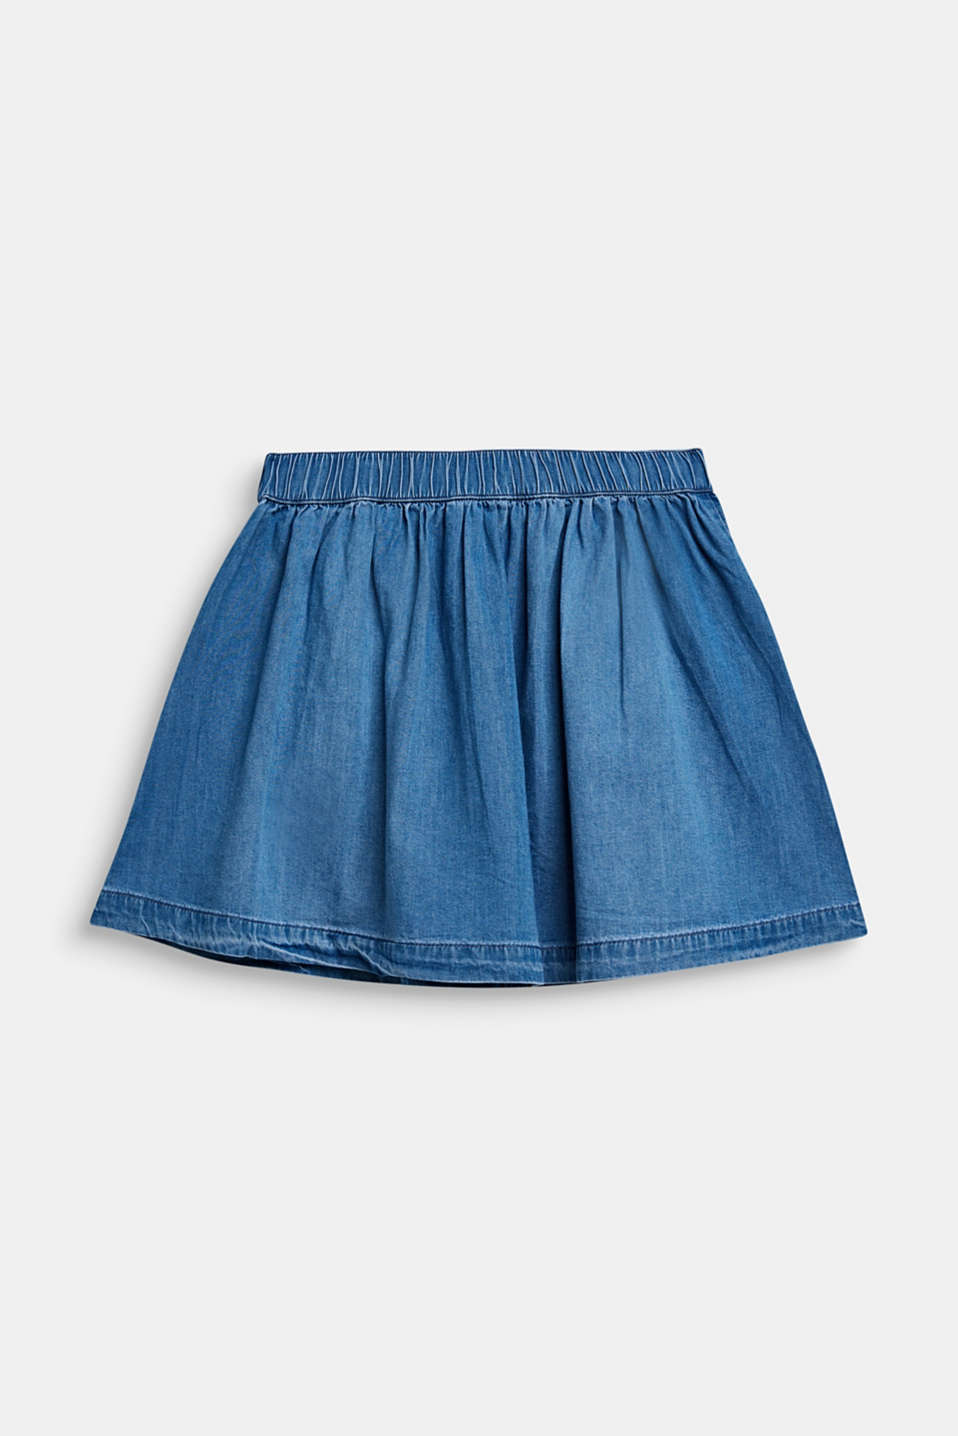 Denim A-line skirt, 100% cotton, MEDIUM WASH DE, detail image number 1